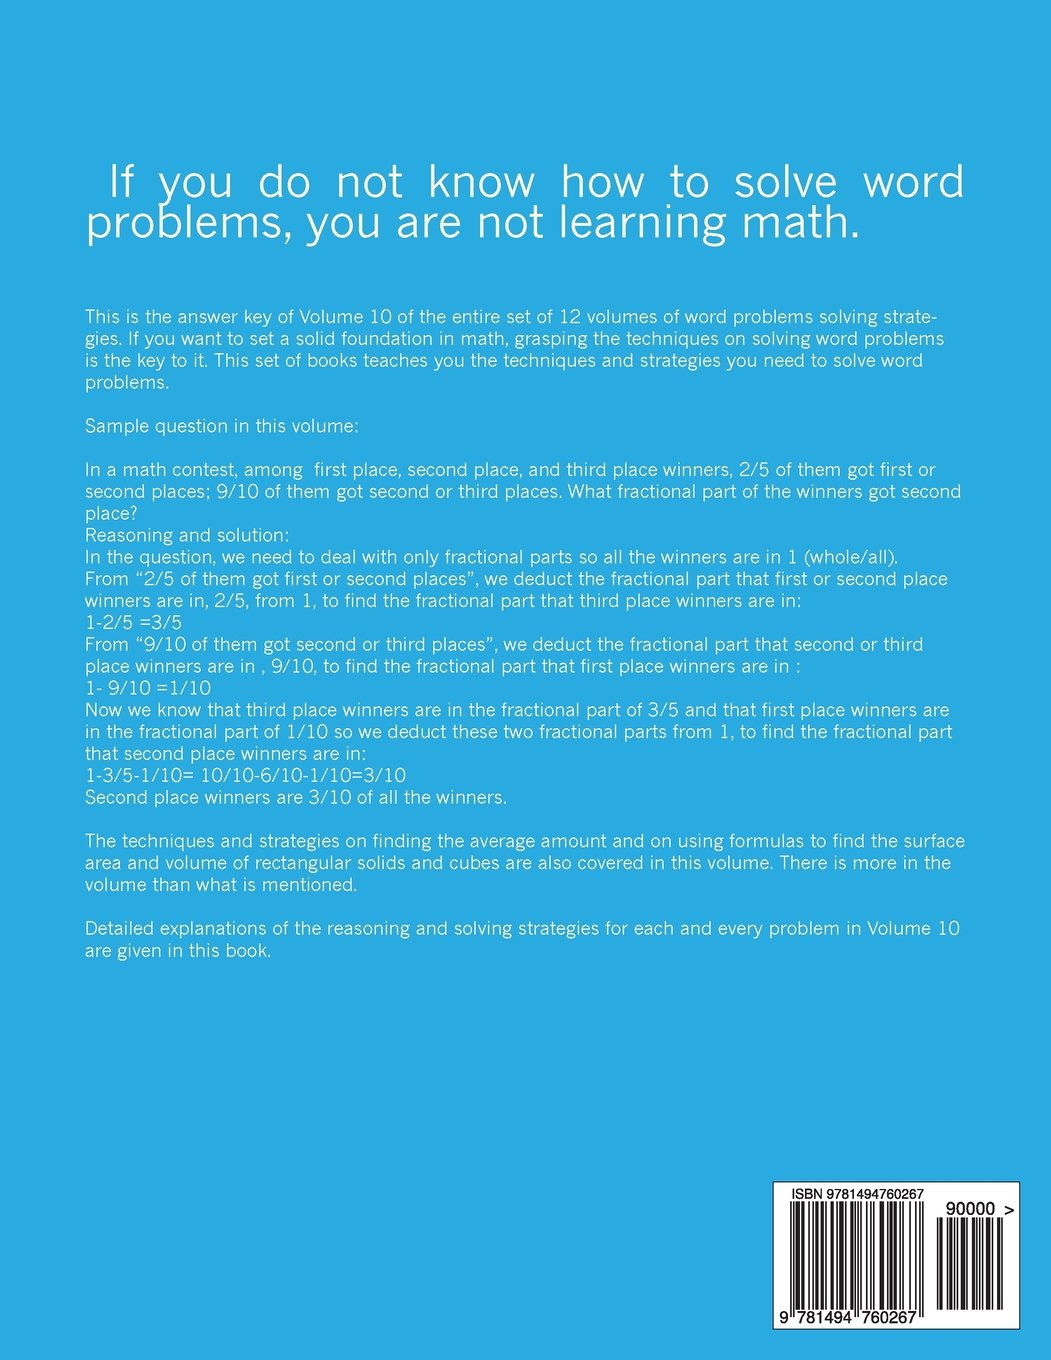 Word Problemsdetailed Explanations Of Reasoning And Solving Strategies:  Volume 10 Answer Key: Bill S How To Calculate The Surface Area